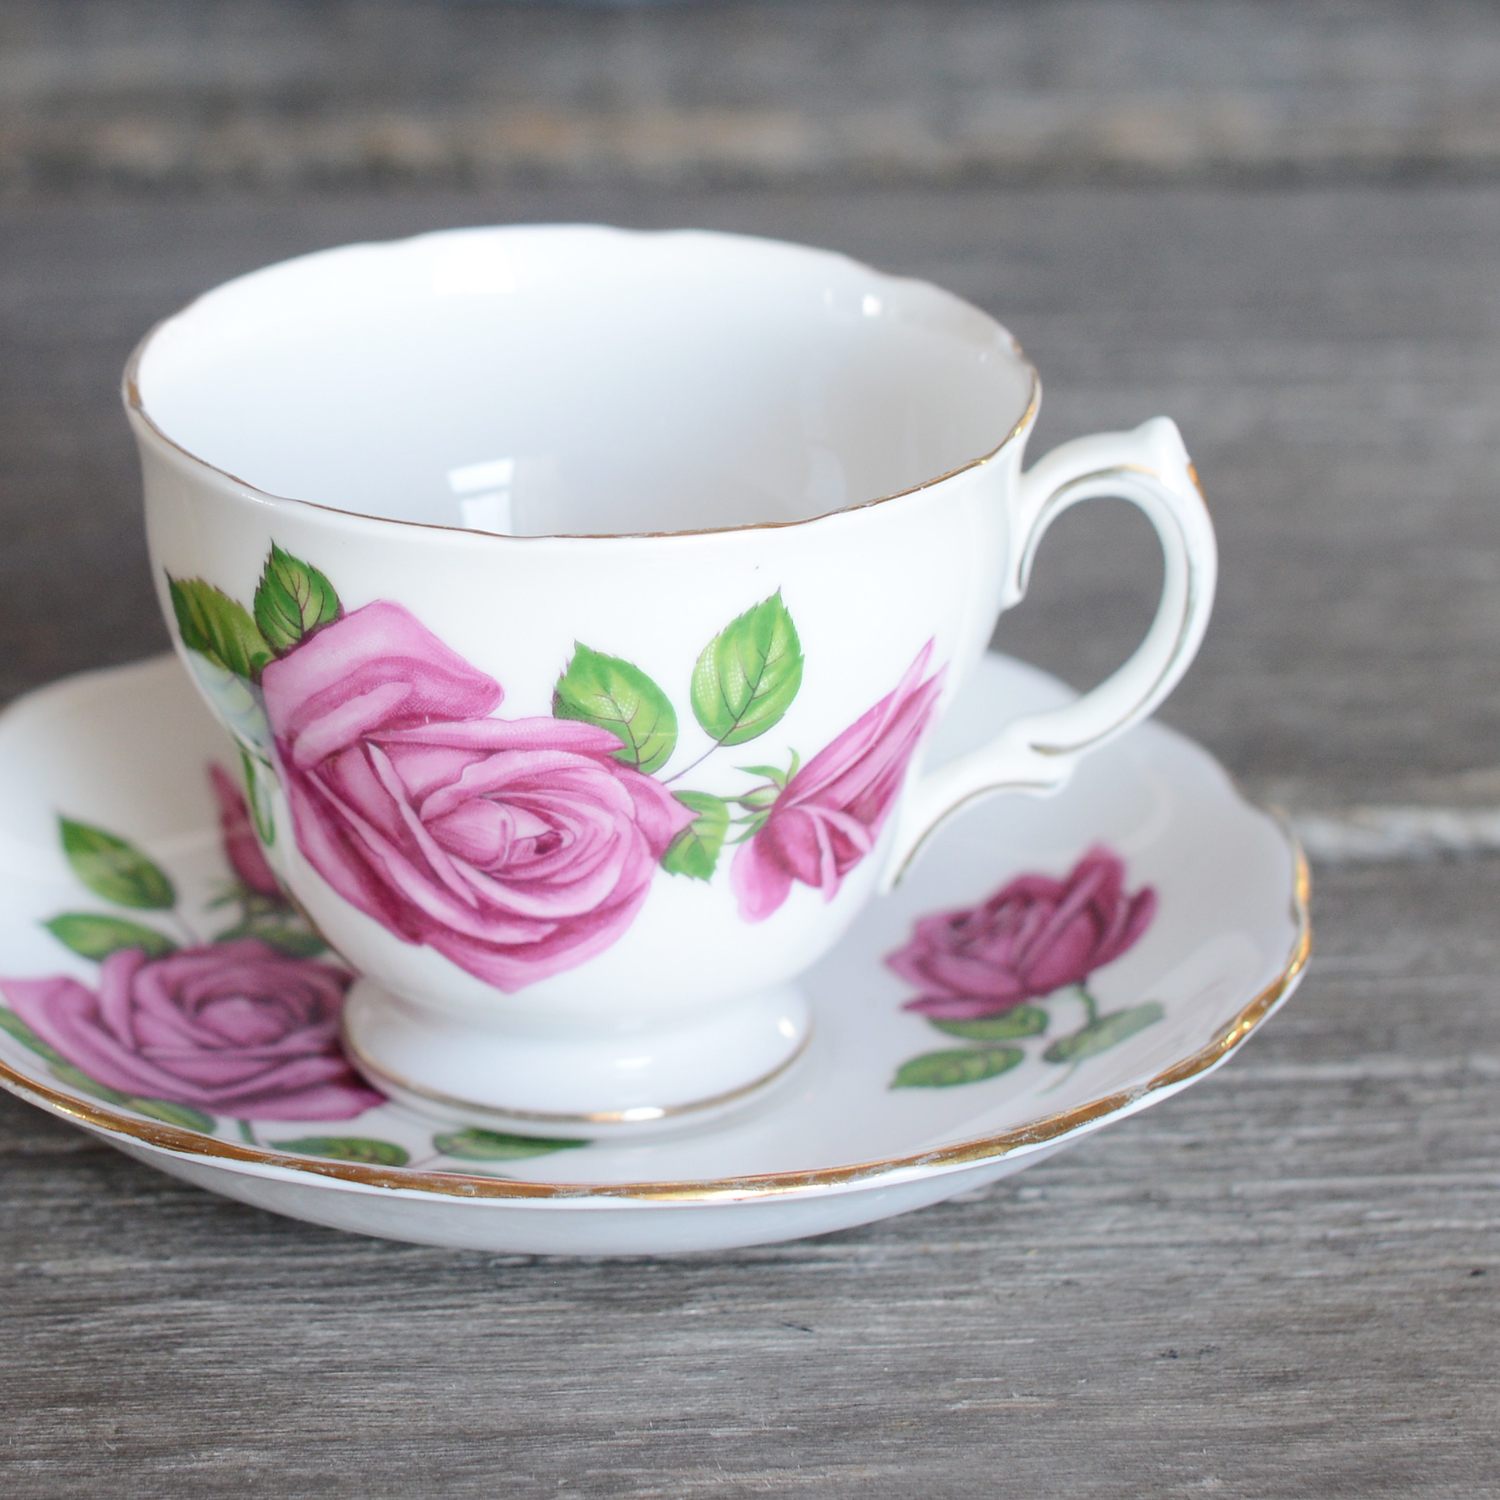 atha tea cup and saucer